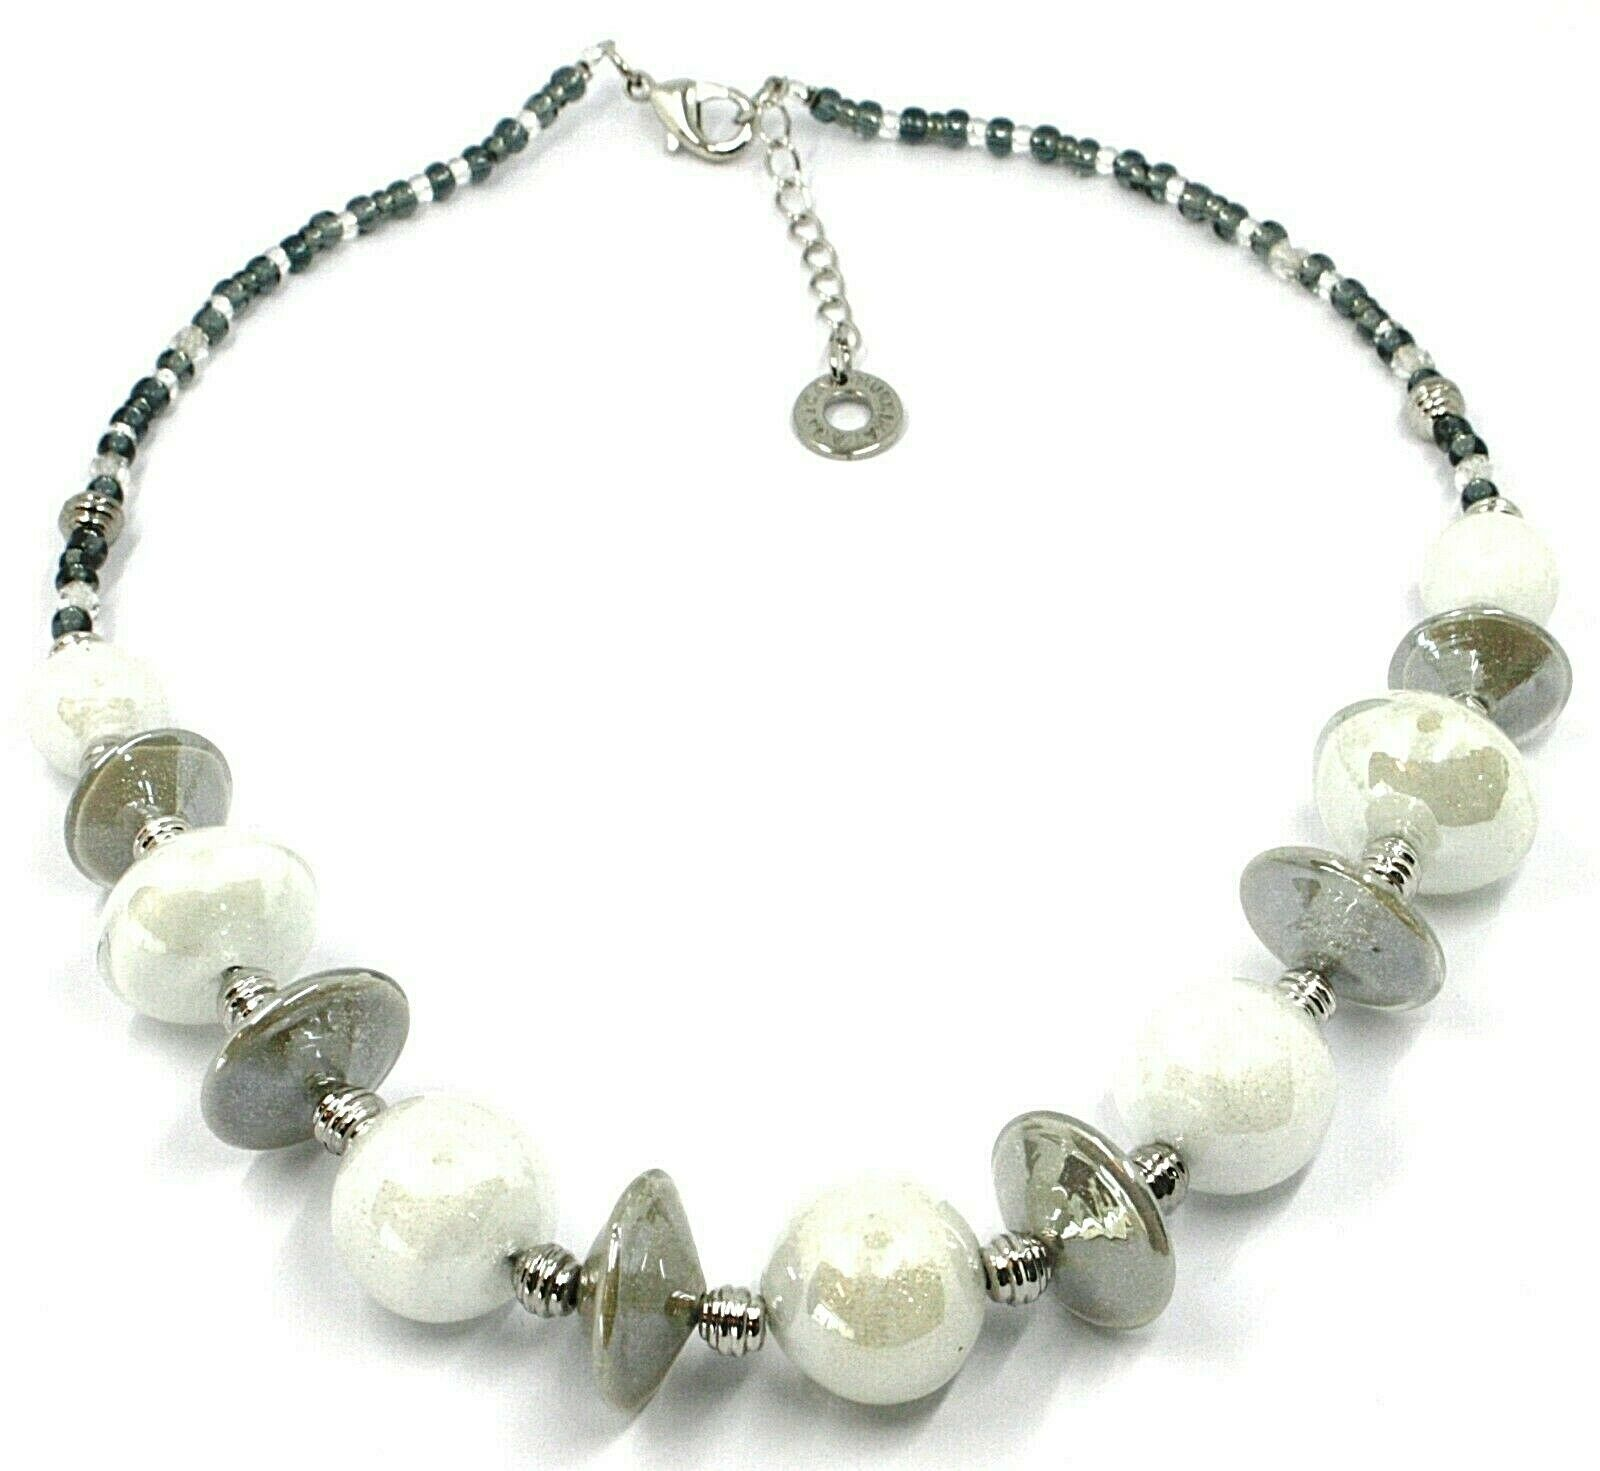 Necklace Antica Murrina Venezia, CO955A02, Discs Ovals Spheres, White, 45 CM